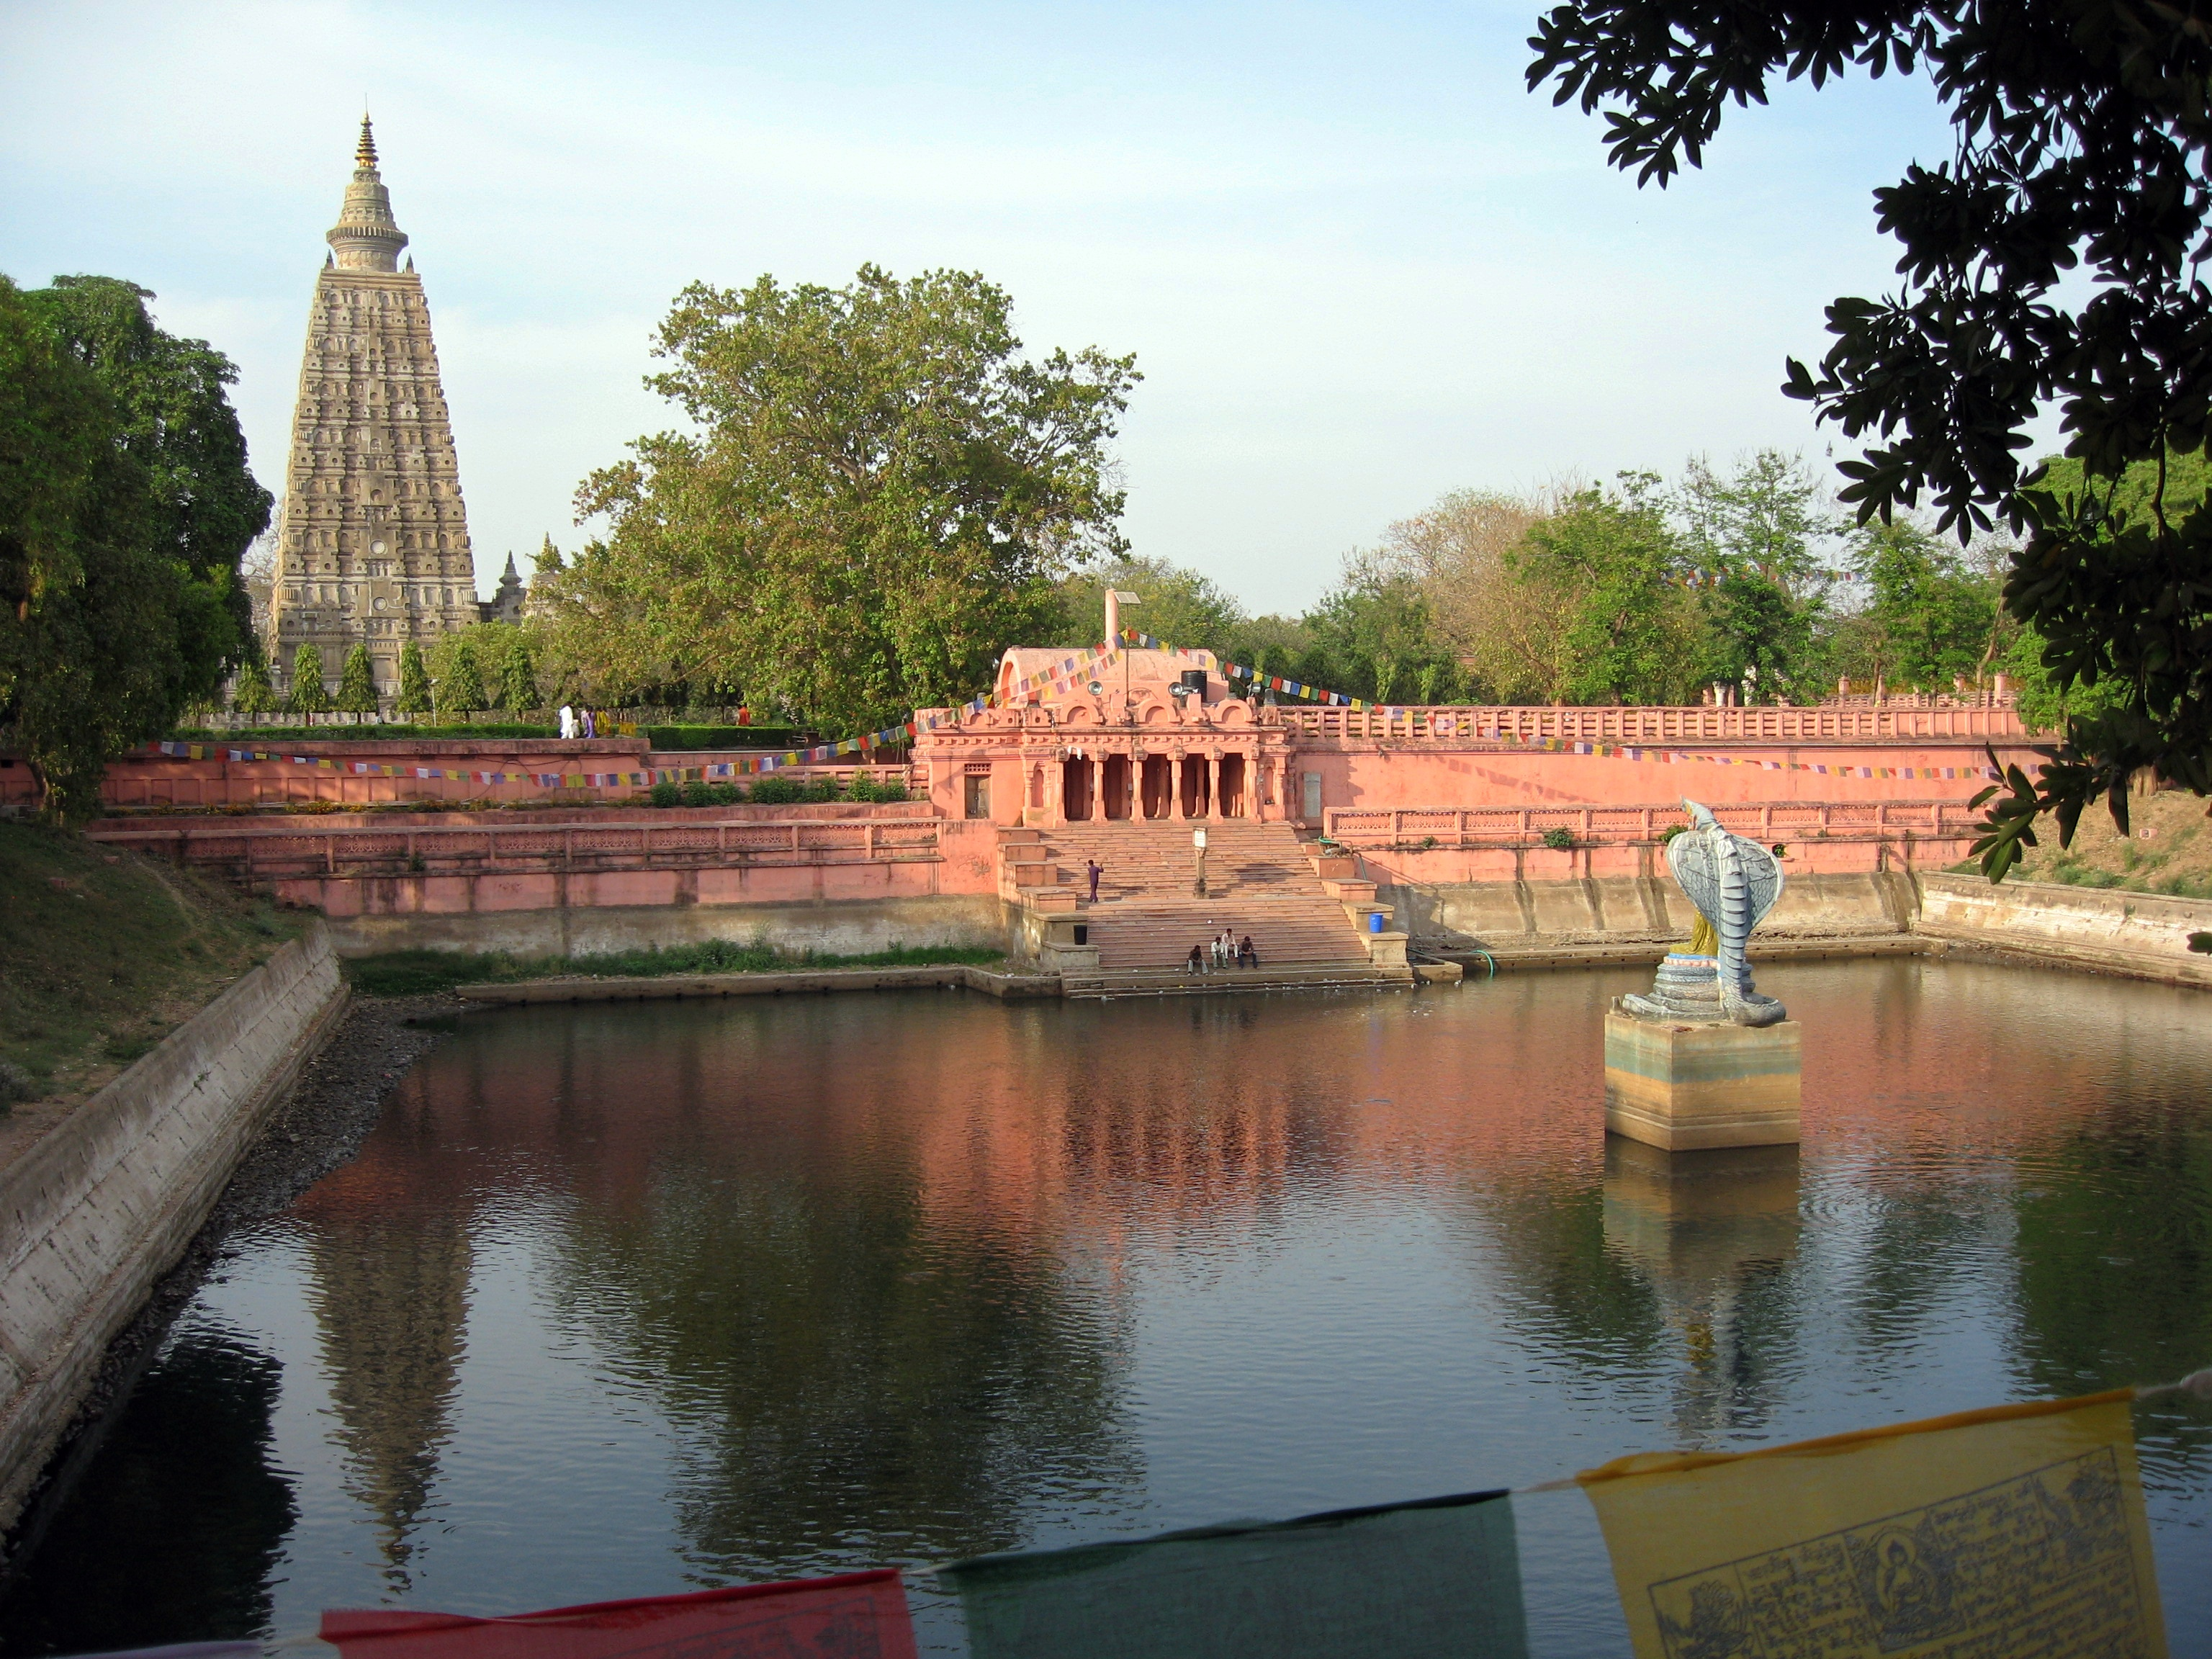 Mucalinda Tank south of the Mahabodhi Temple, Bodhgaya, Bihar, India